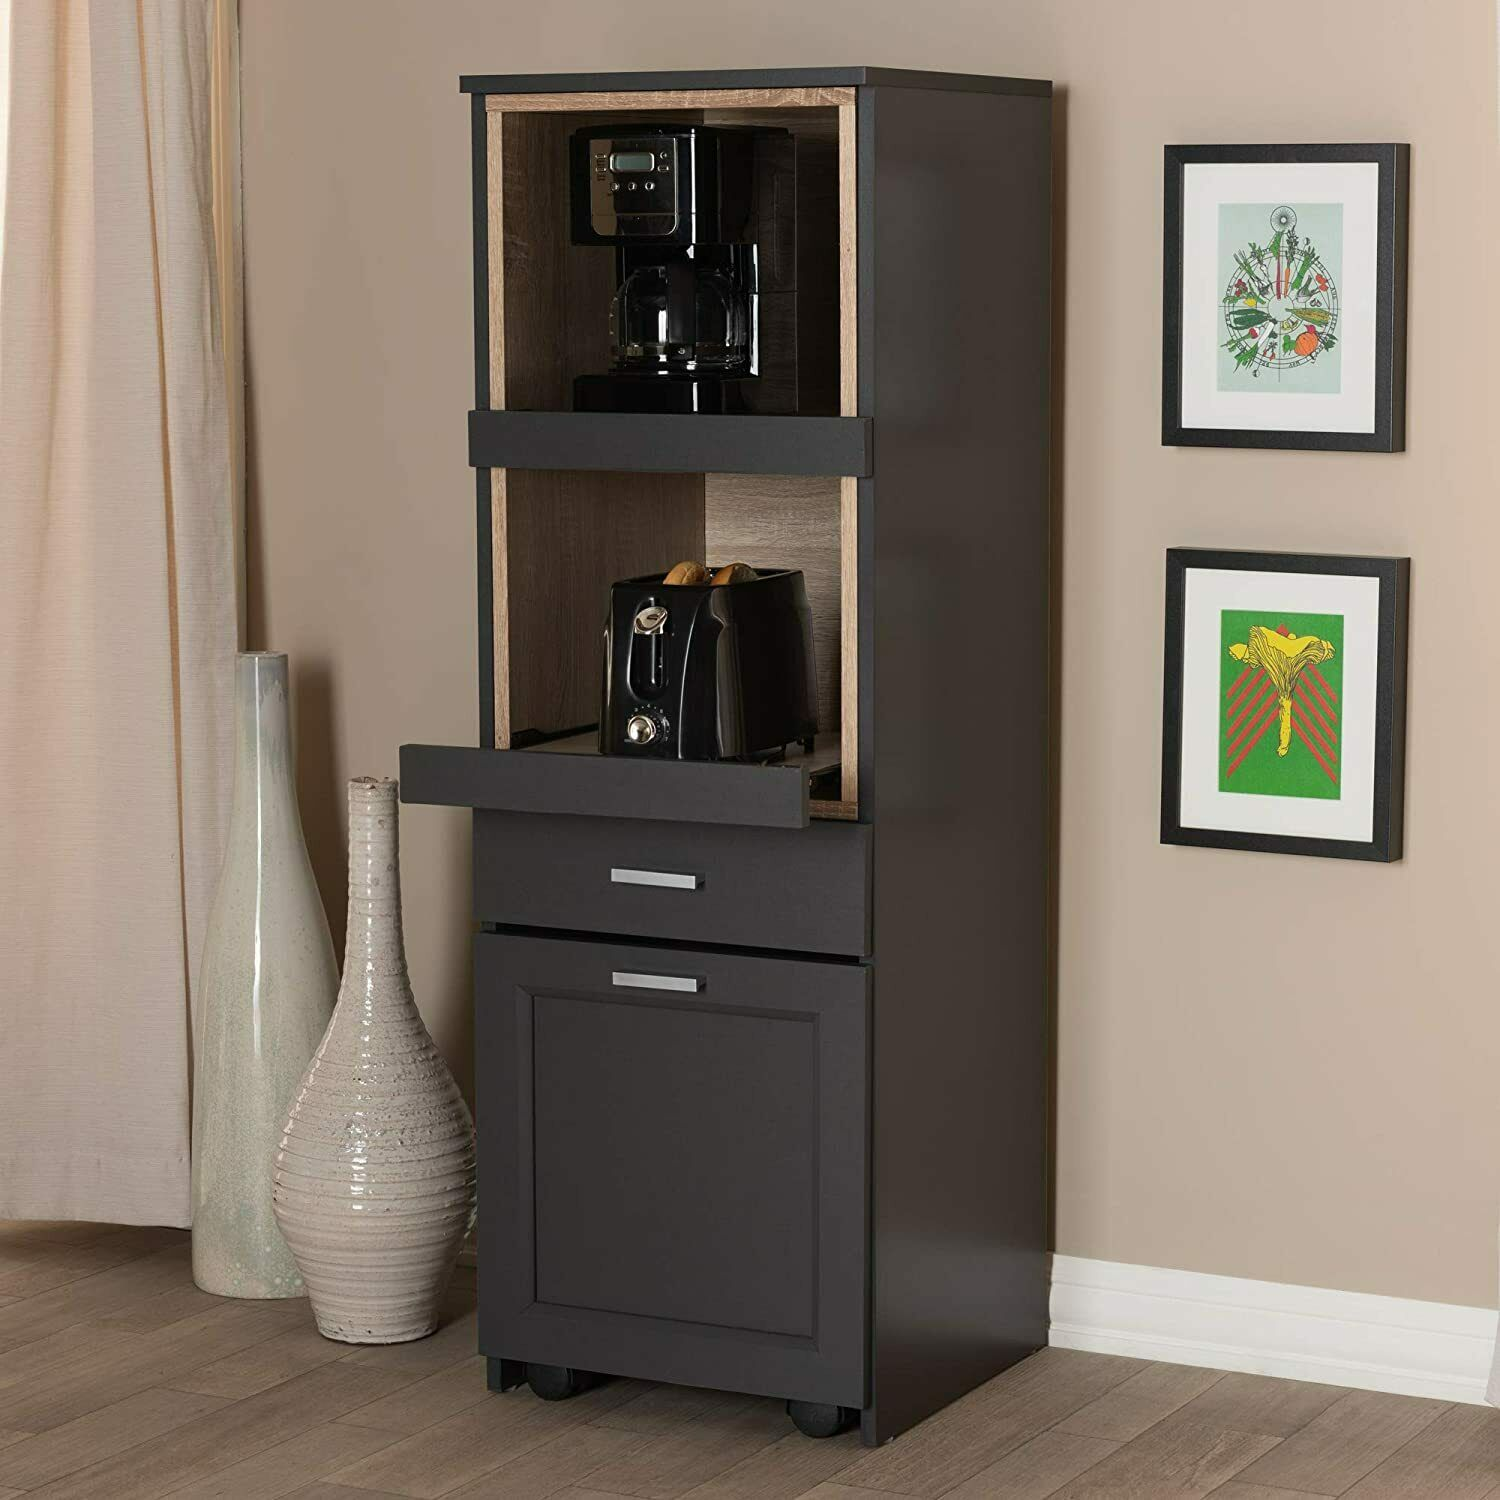 Baxton Studio Fabian Kitchen Cabinet With Roll Out Compartment For Sale Online Ebay